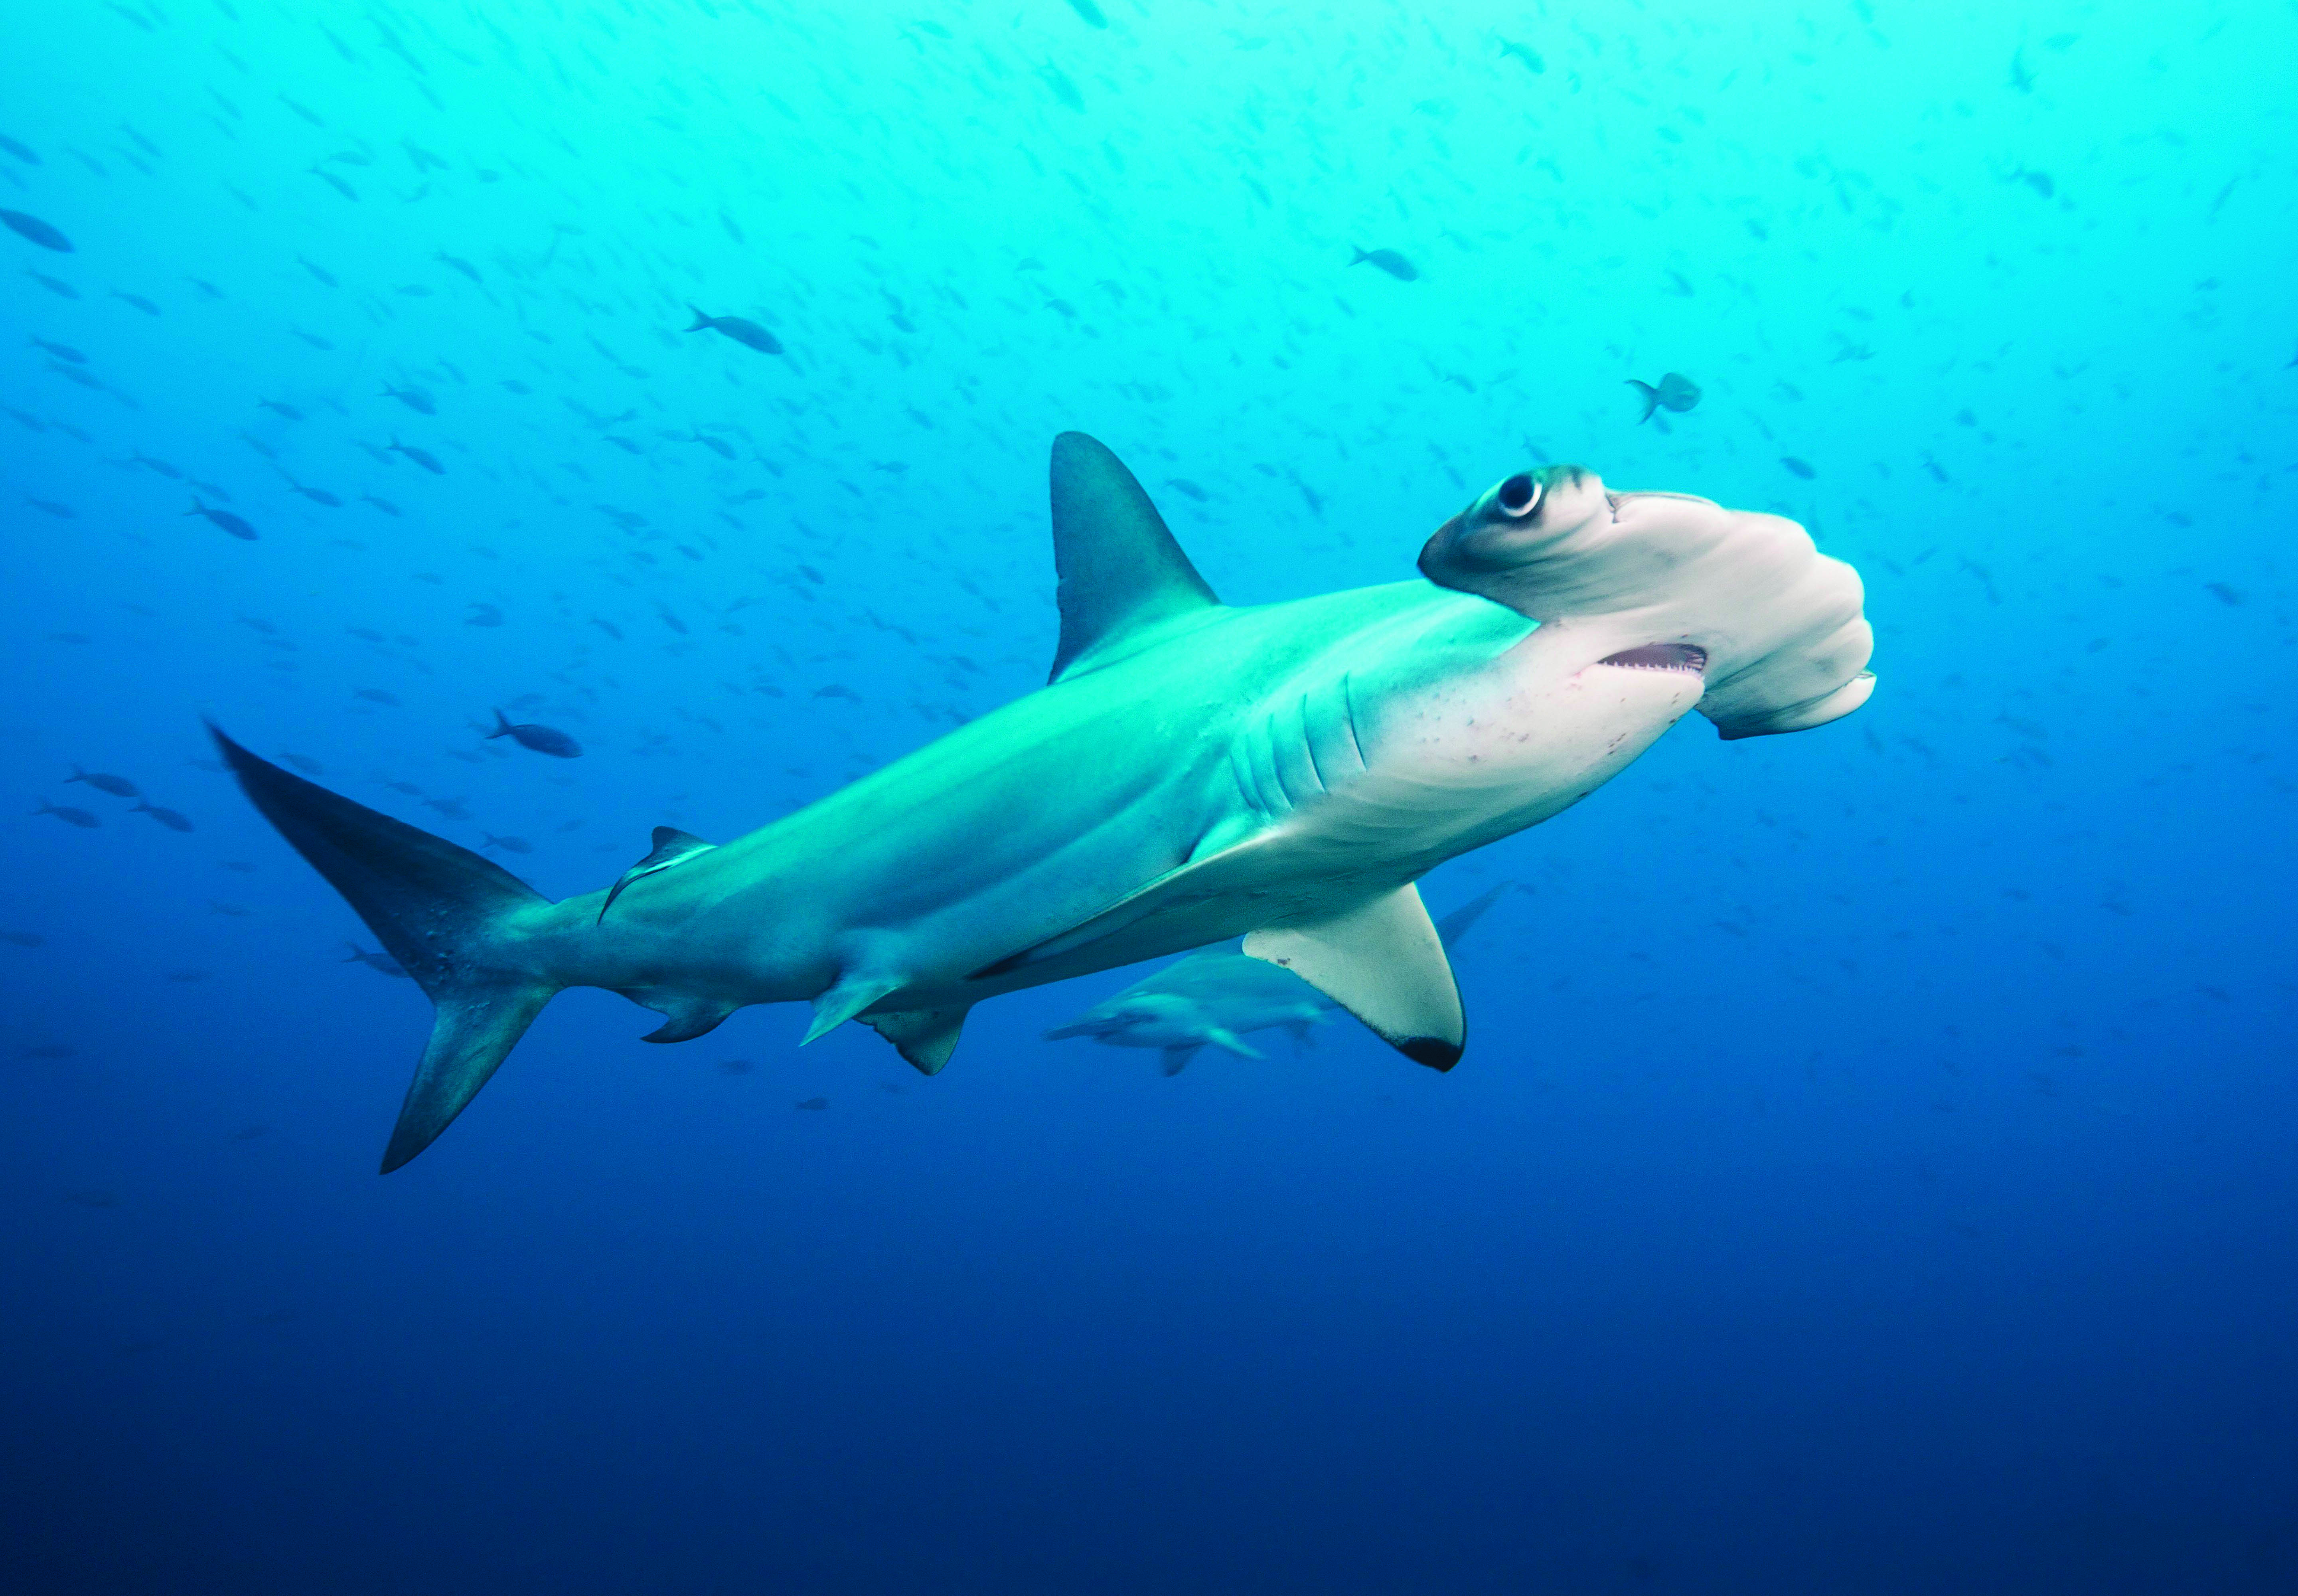 Fish tank sharks - Newport Aquarium Will Be The First Institution In North America To Exhibit Multiple Scalloped Hammerhead Sharks